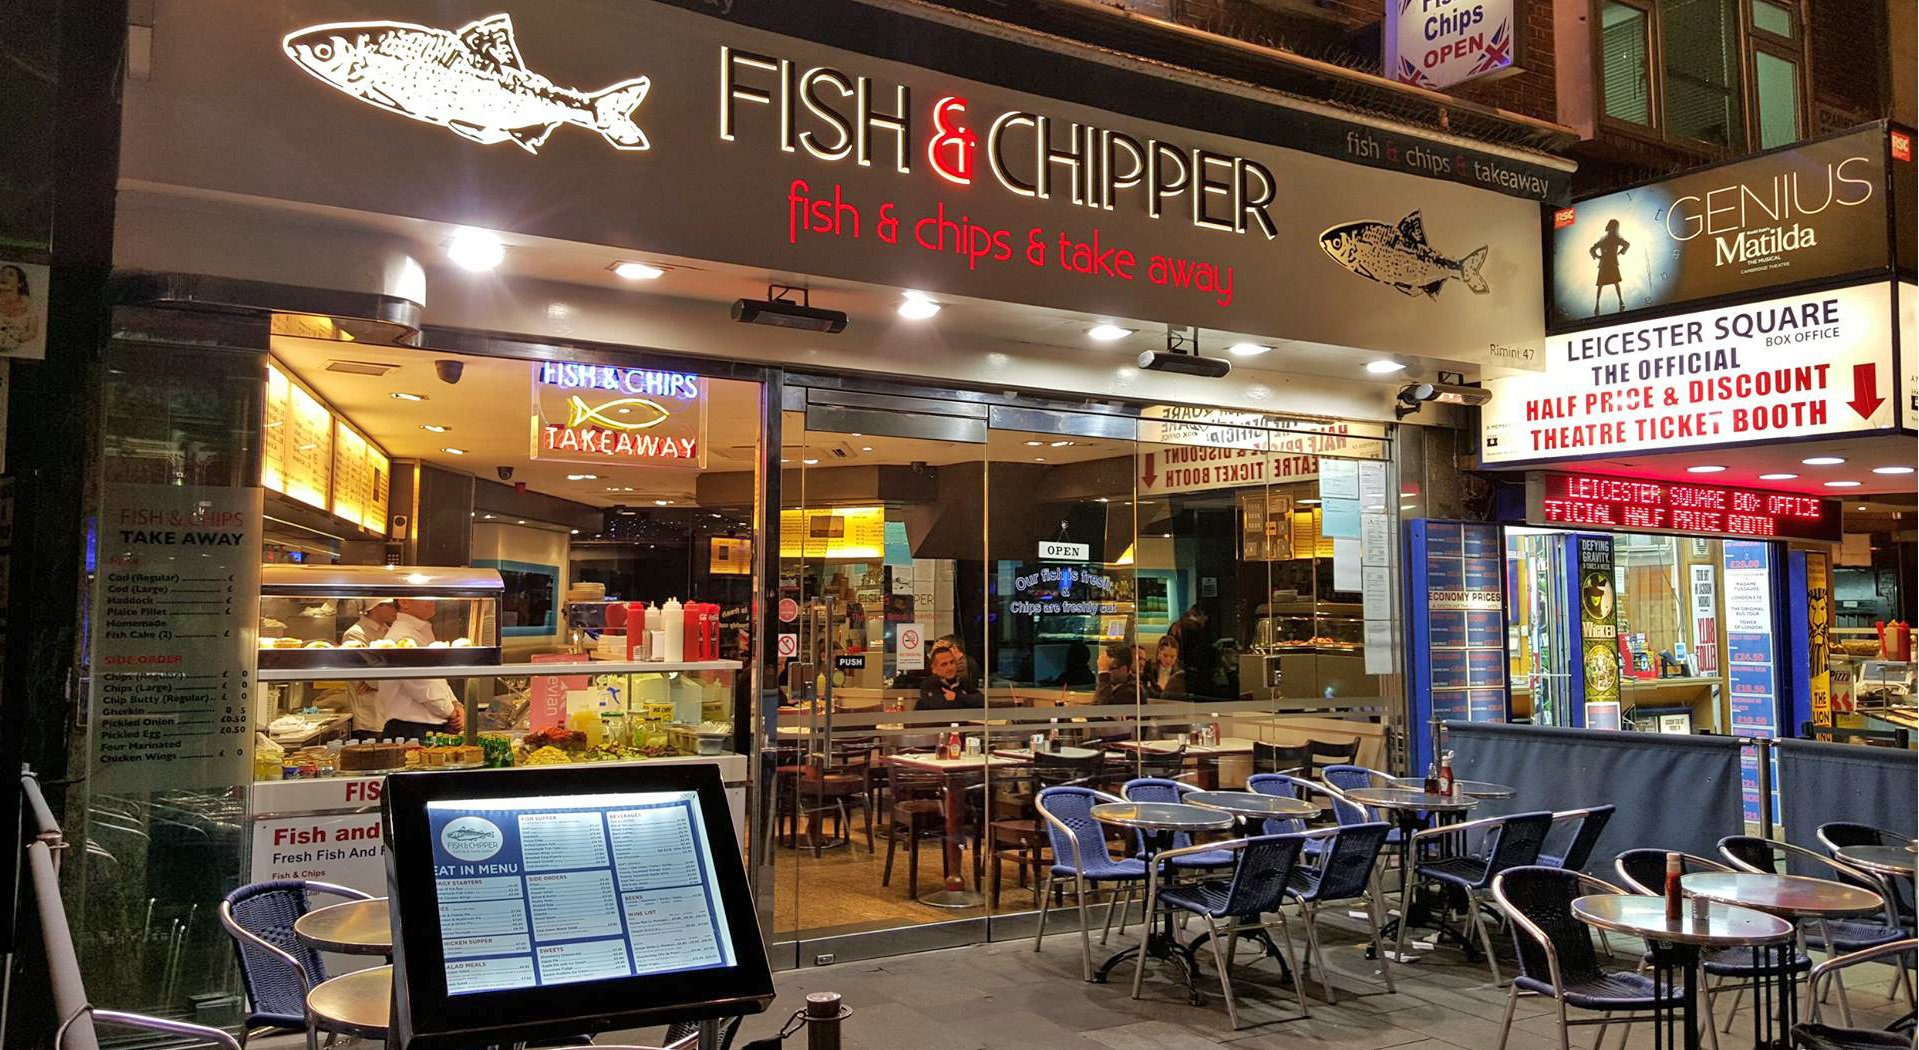 Fish & Chipper